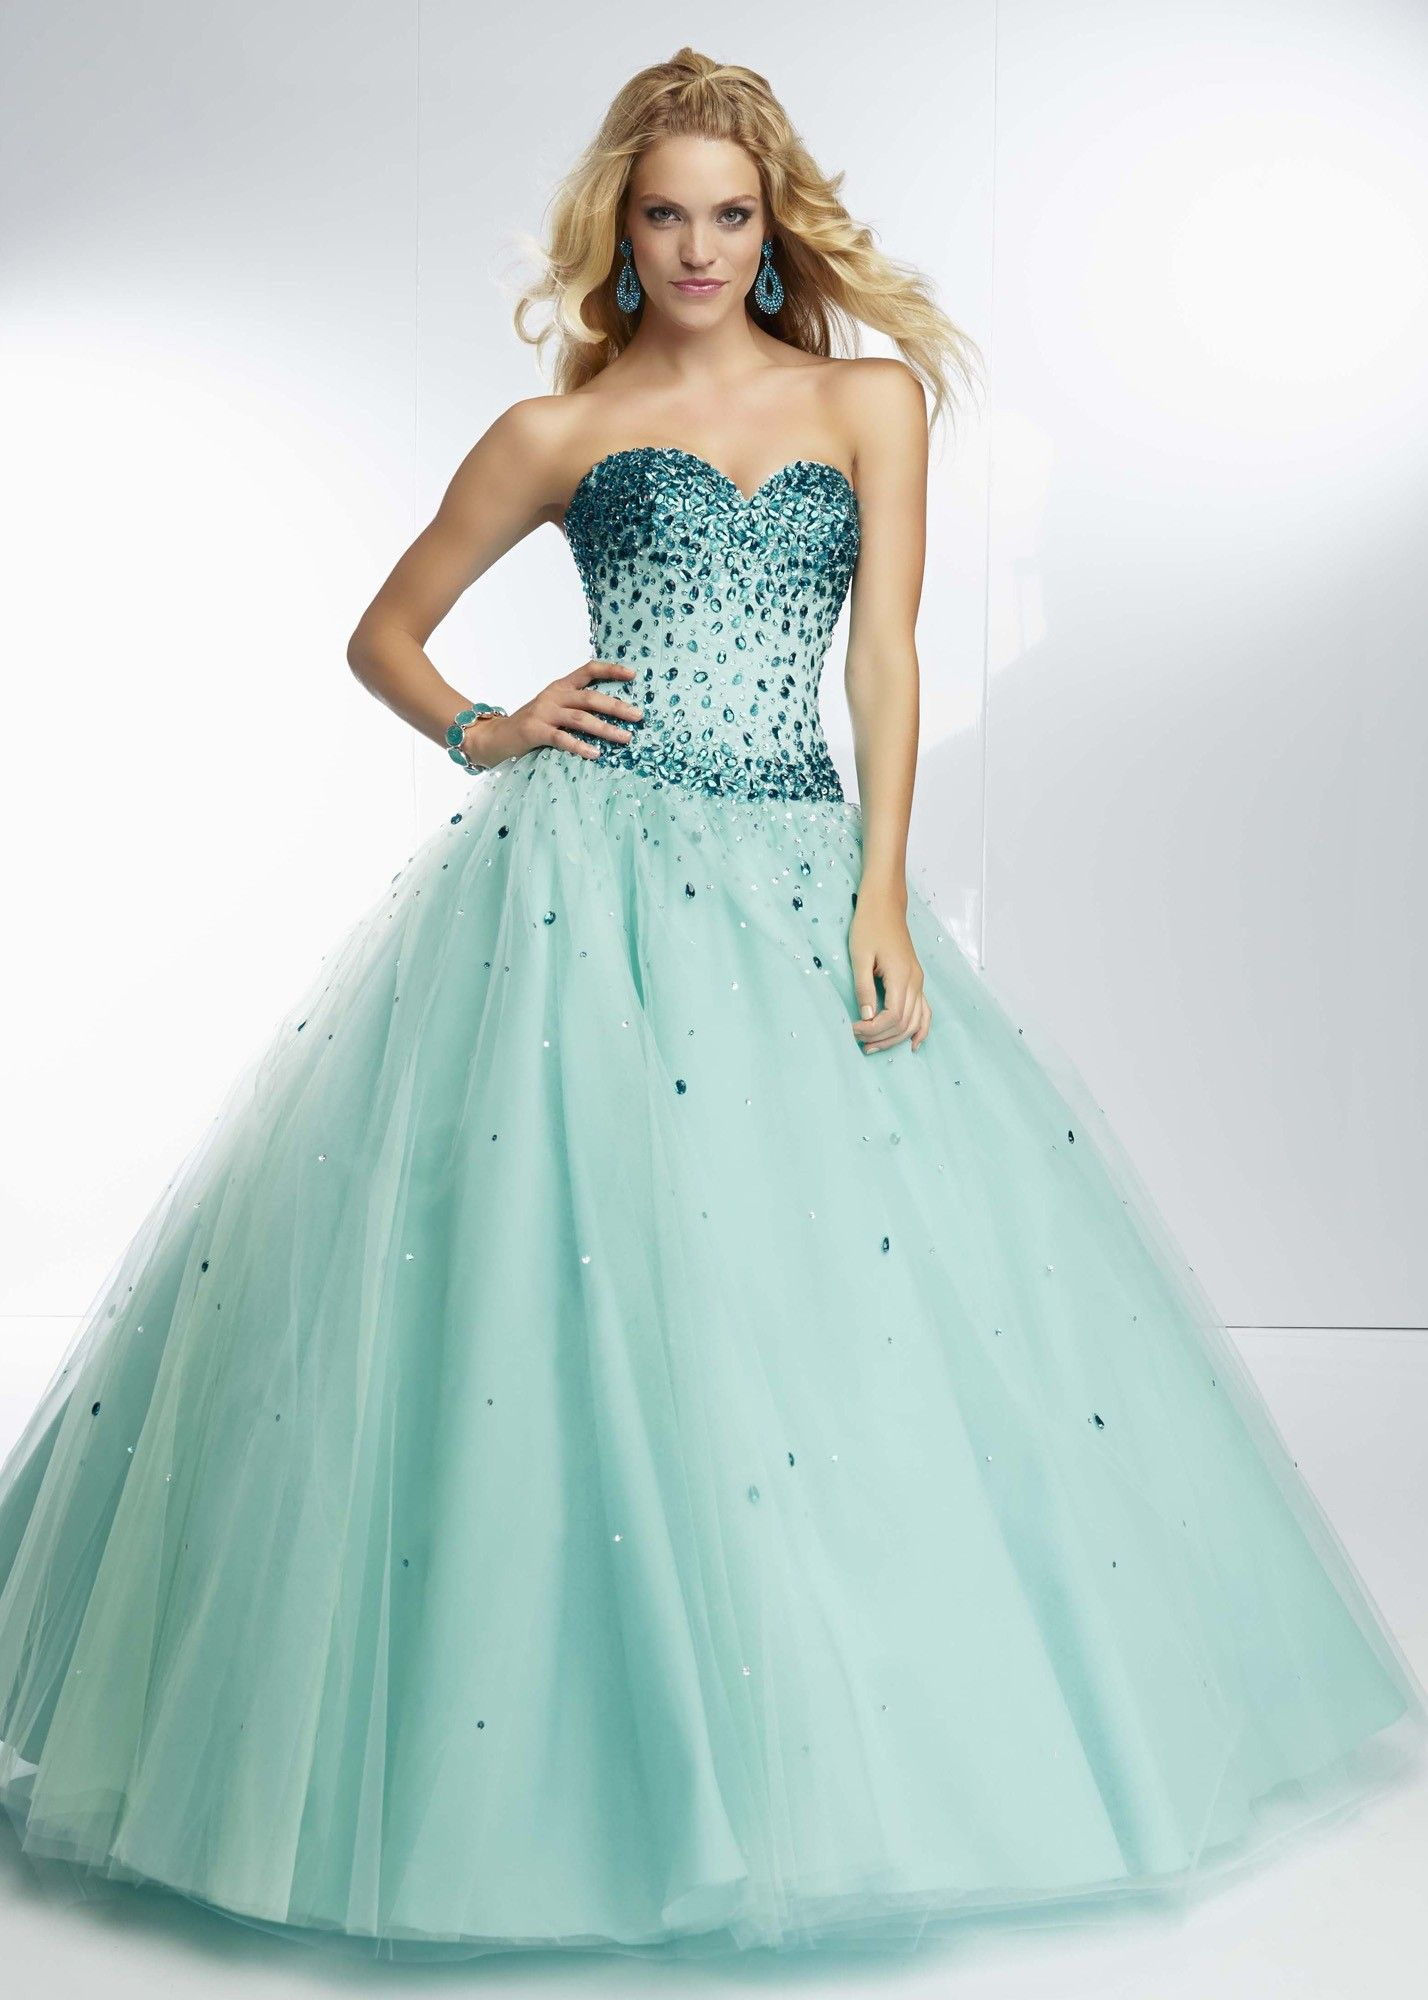 Paparazzi by Mori Lee 95083 Jeweled Ball Gown teal wedding dress ...